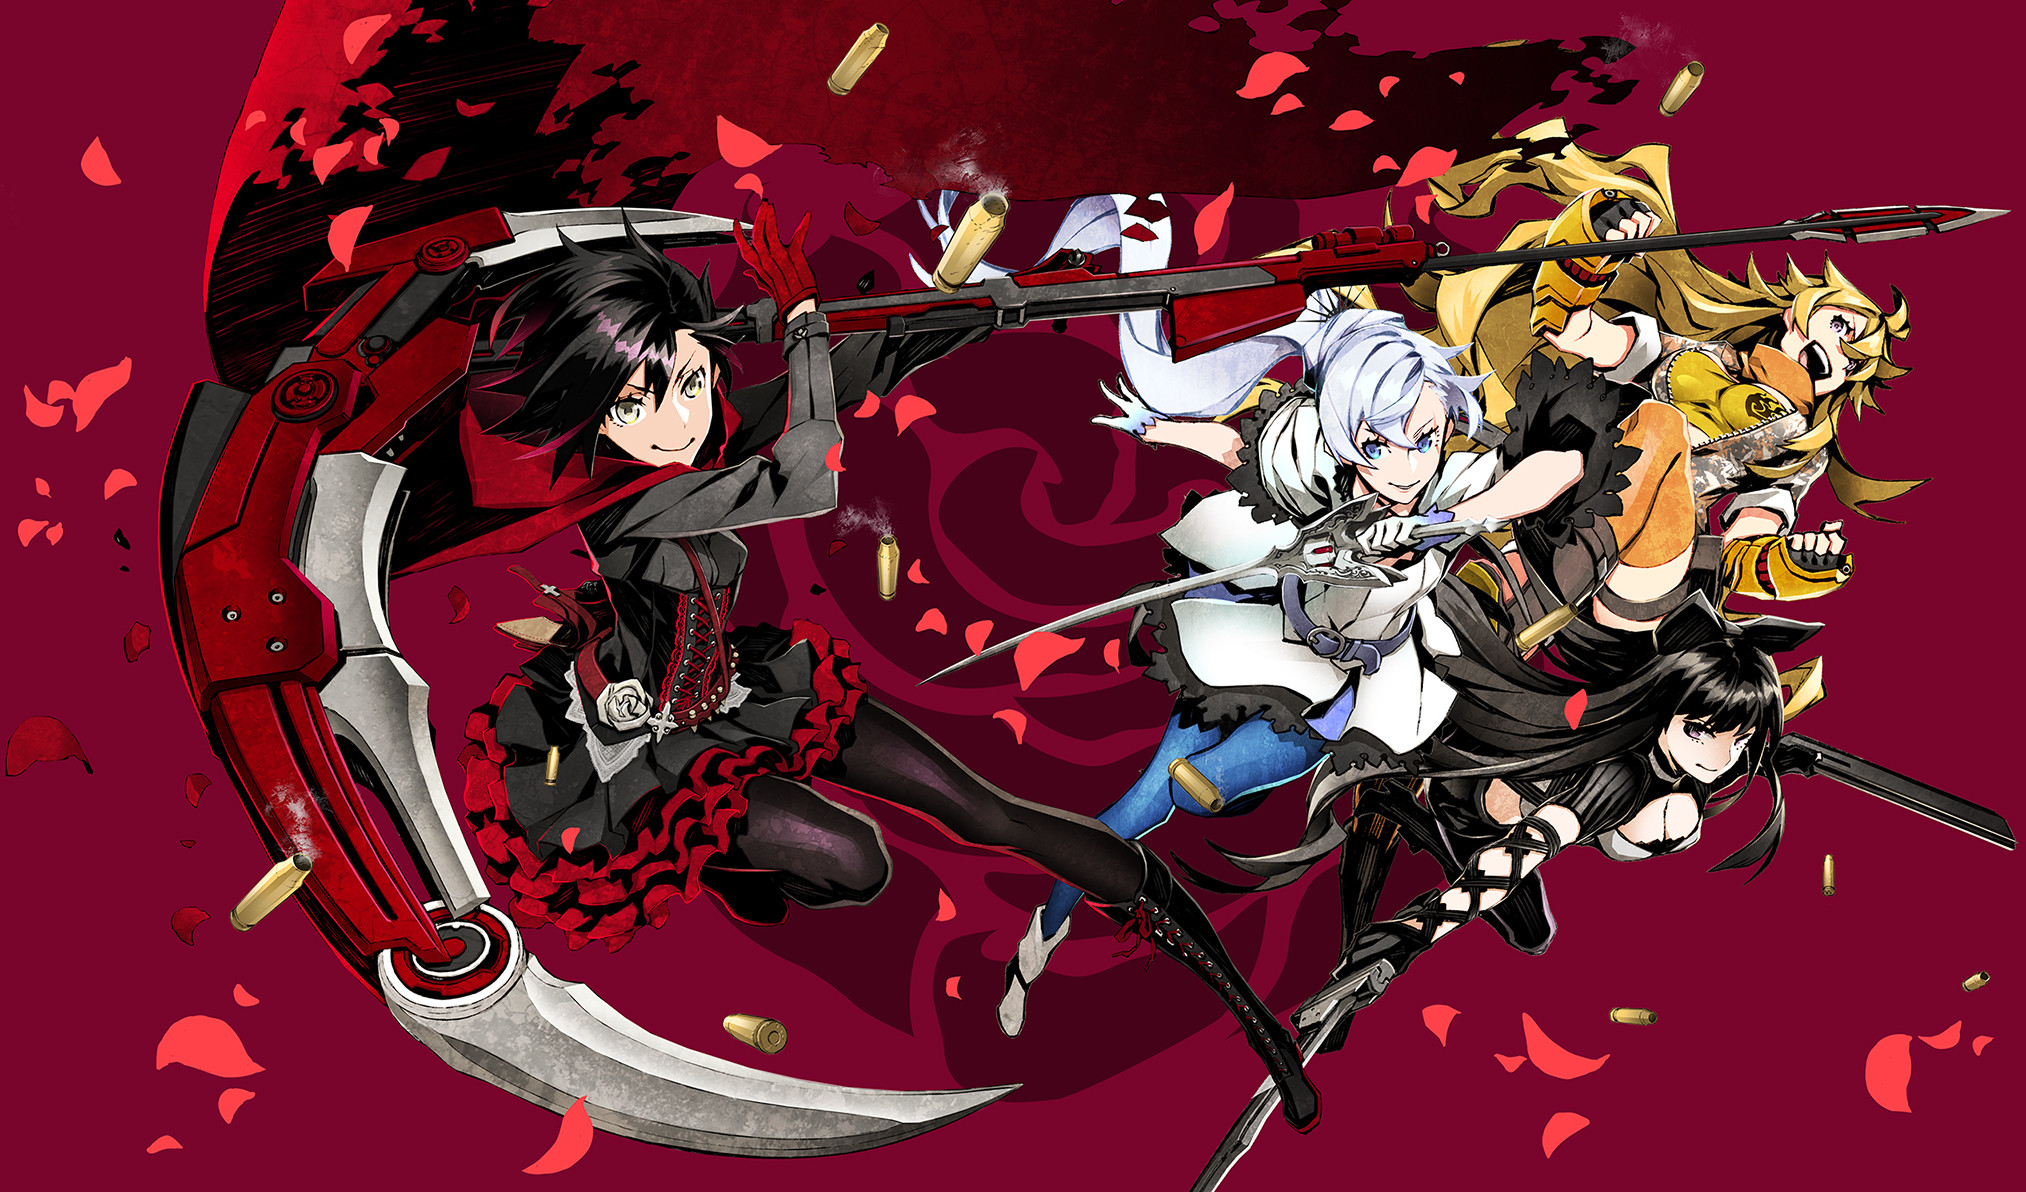 2026x1192 Anime - RWBY Blake Belladonna Ruby Rose (RWBY) Weiss Schnee Yang Xiao Long  Wallpaper